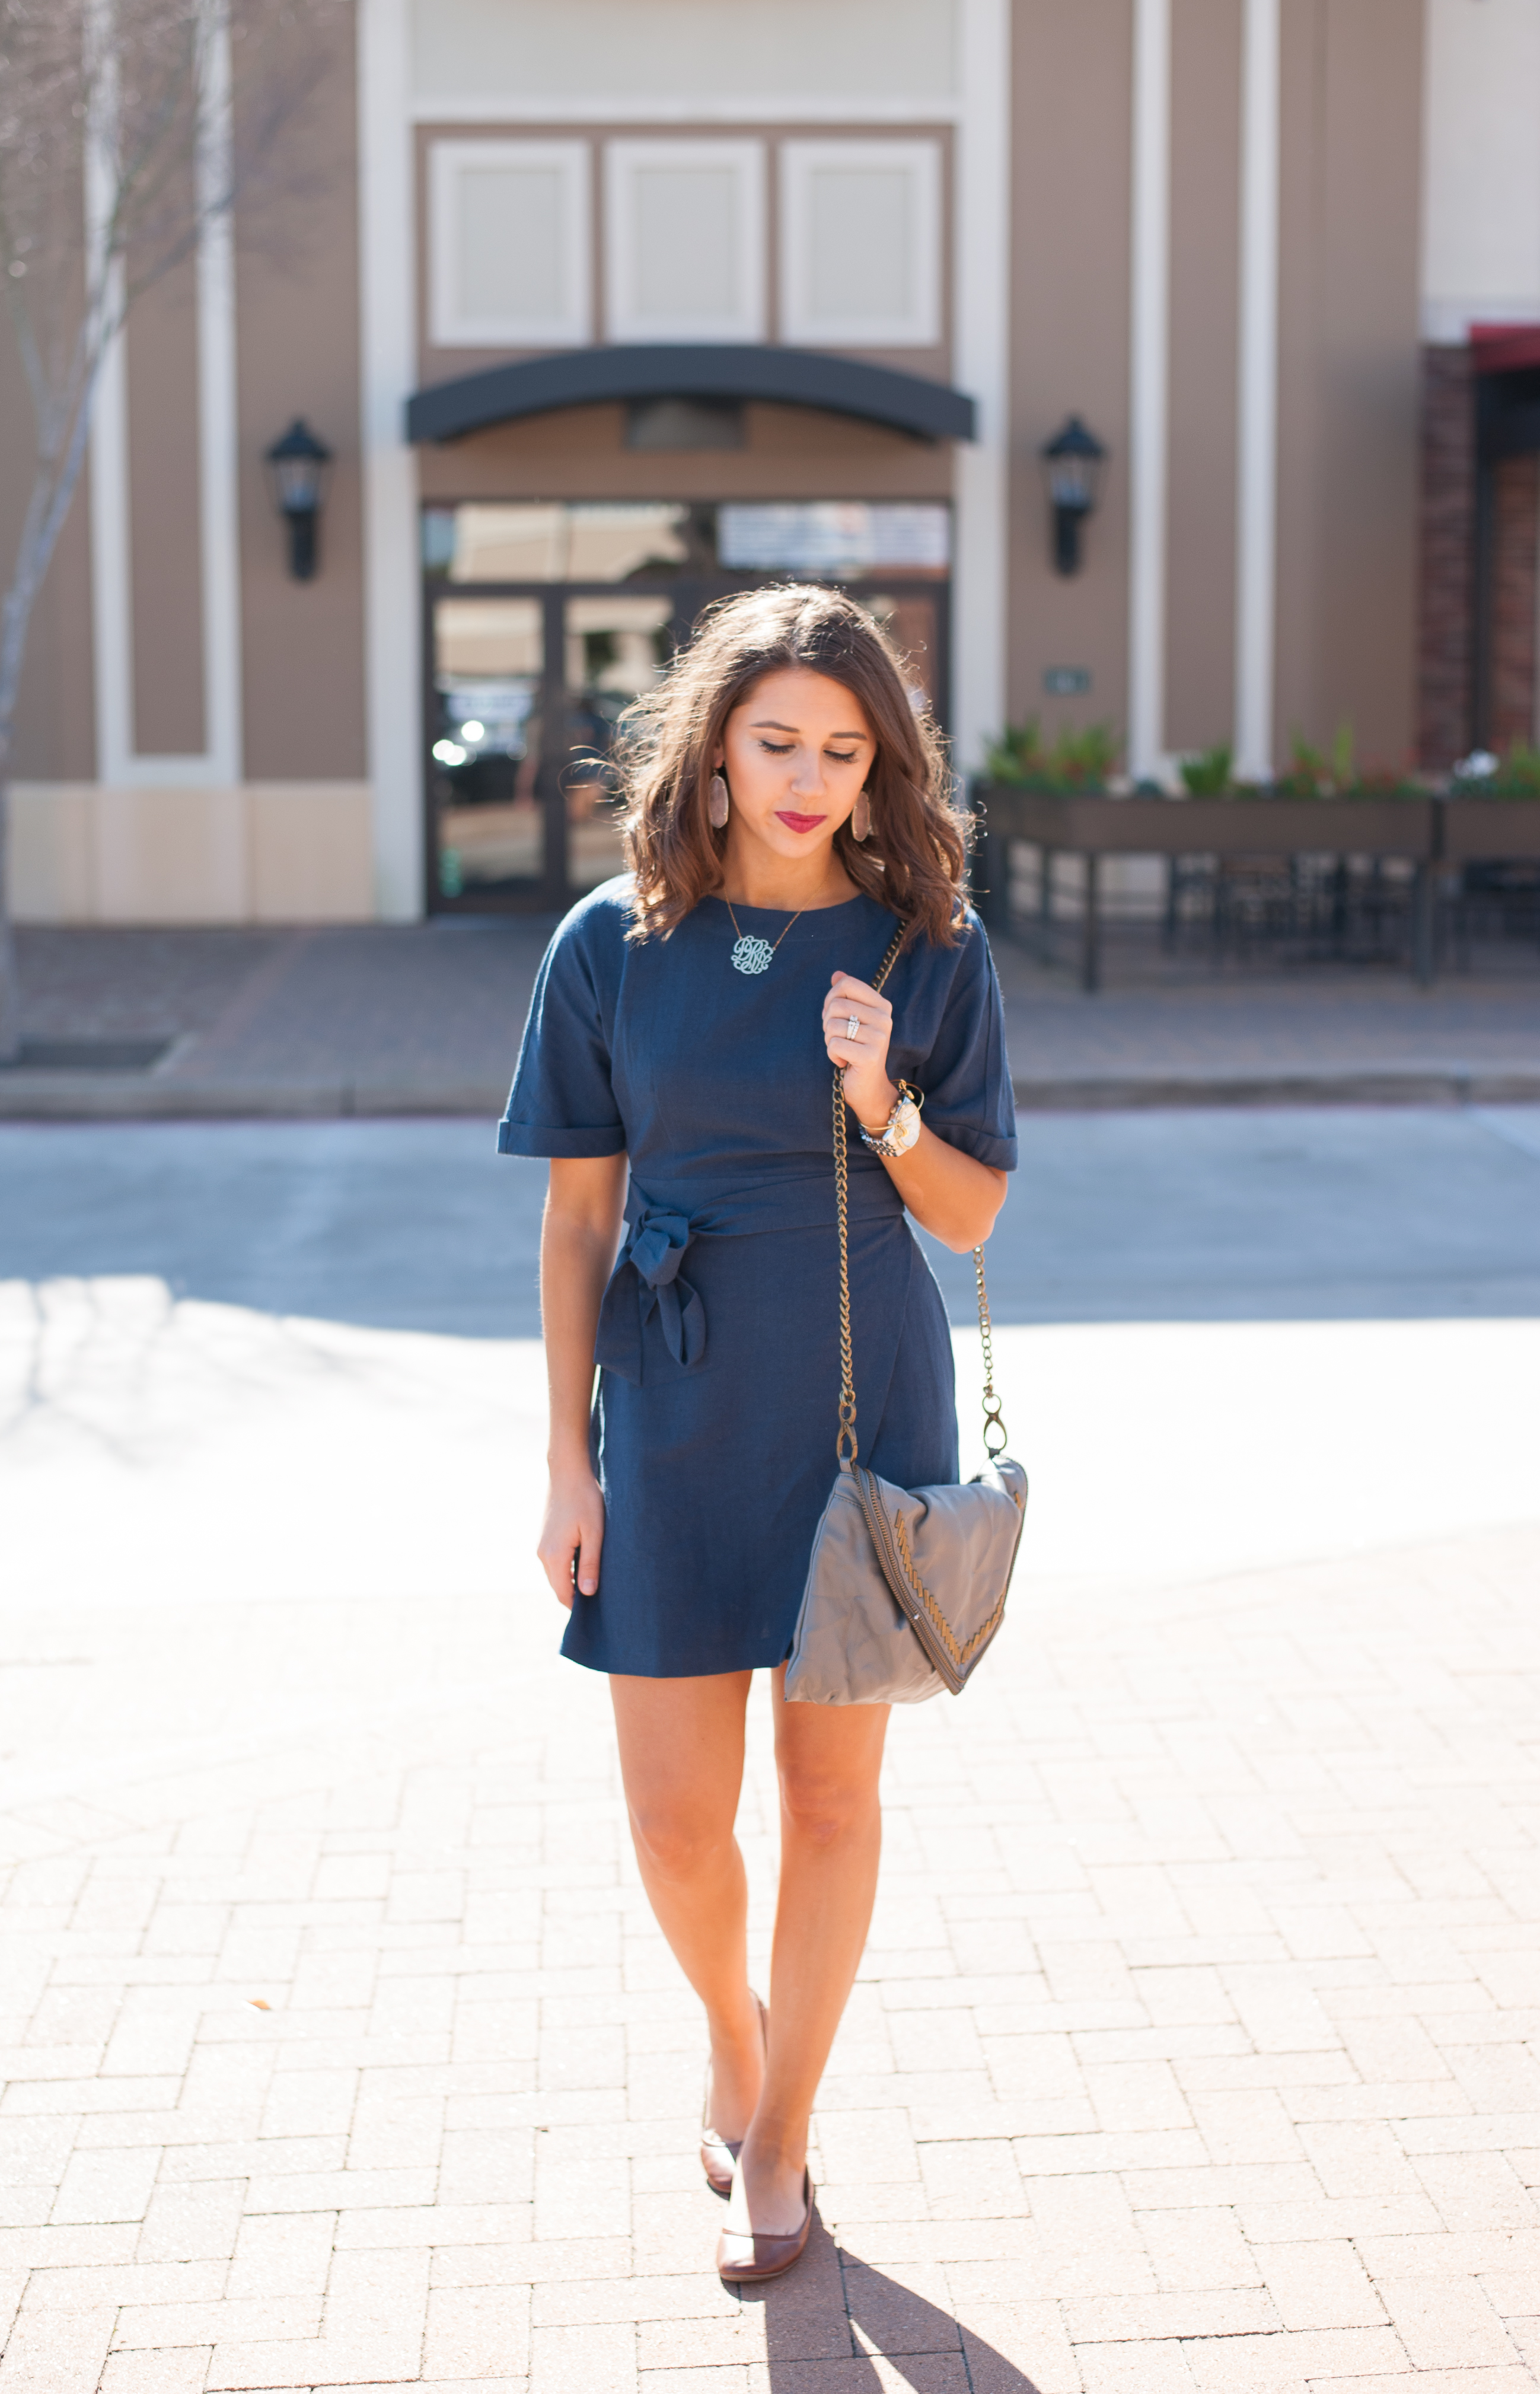 dress_up_buttercup_dede_raad_fashion_blogger_houston (2 of 15)